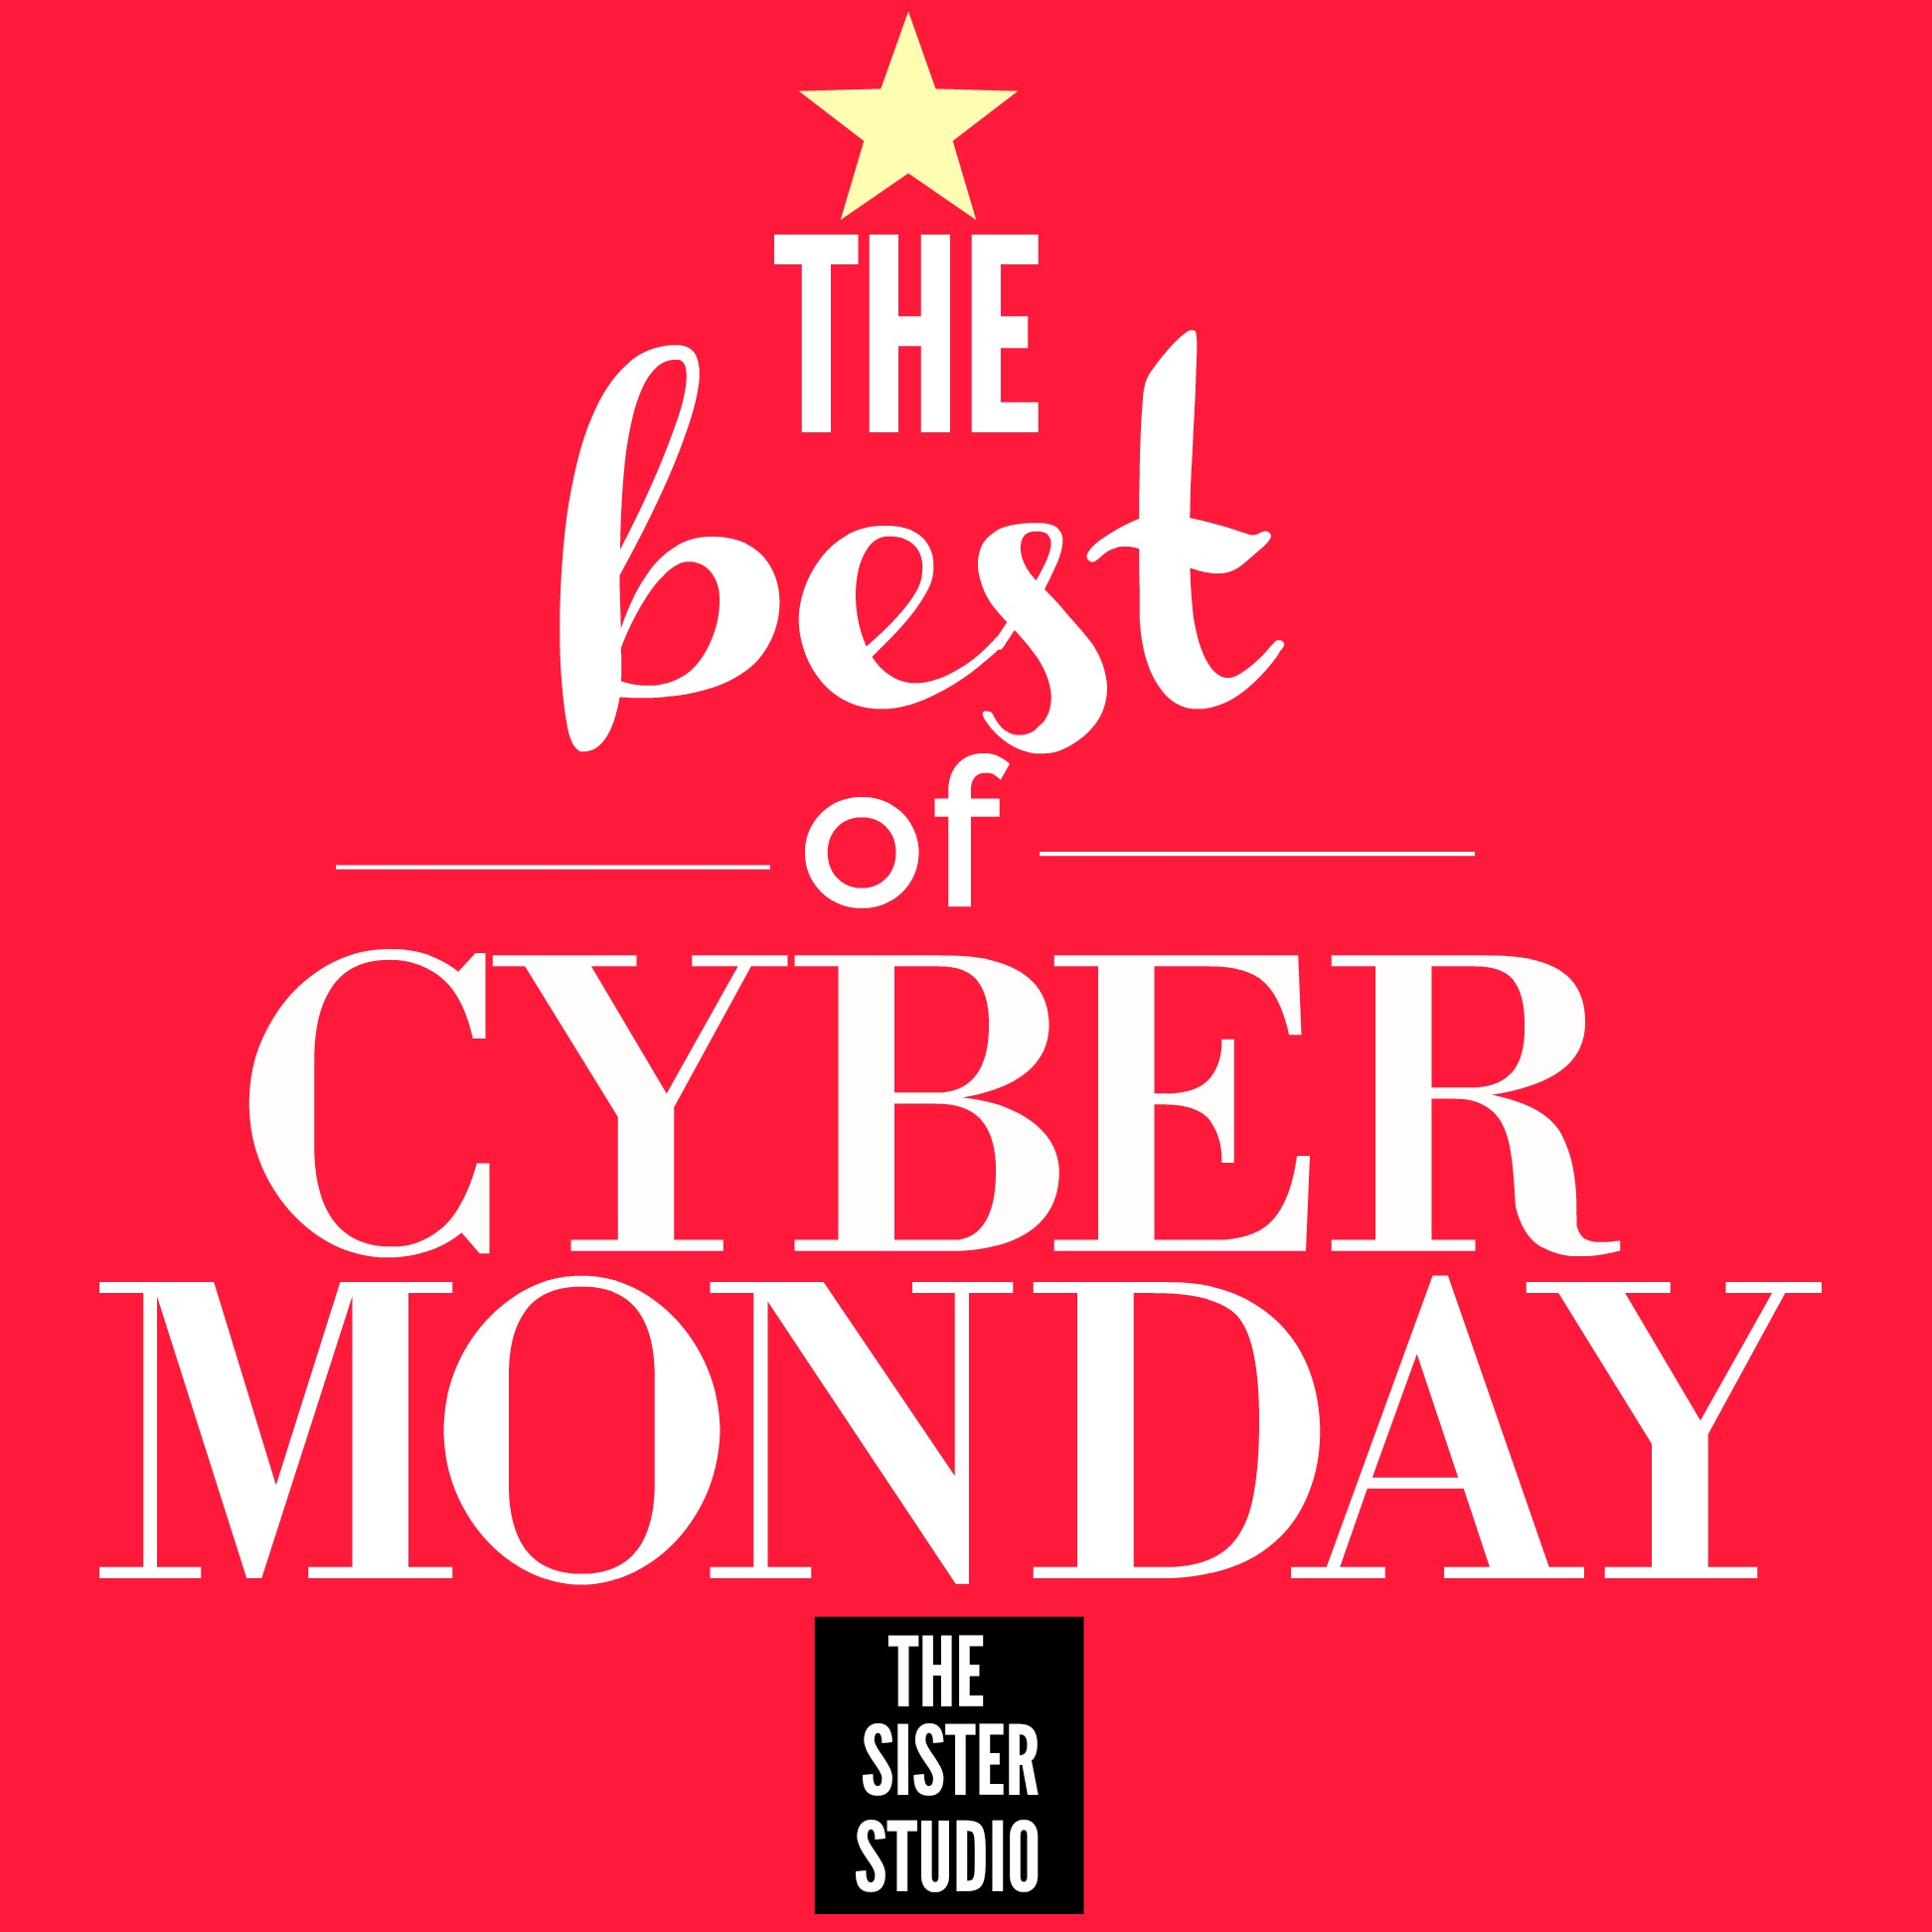 The BEST of CYBER MONDAY 2017